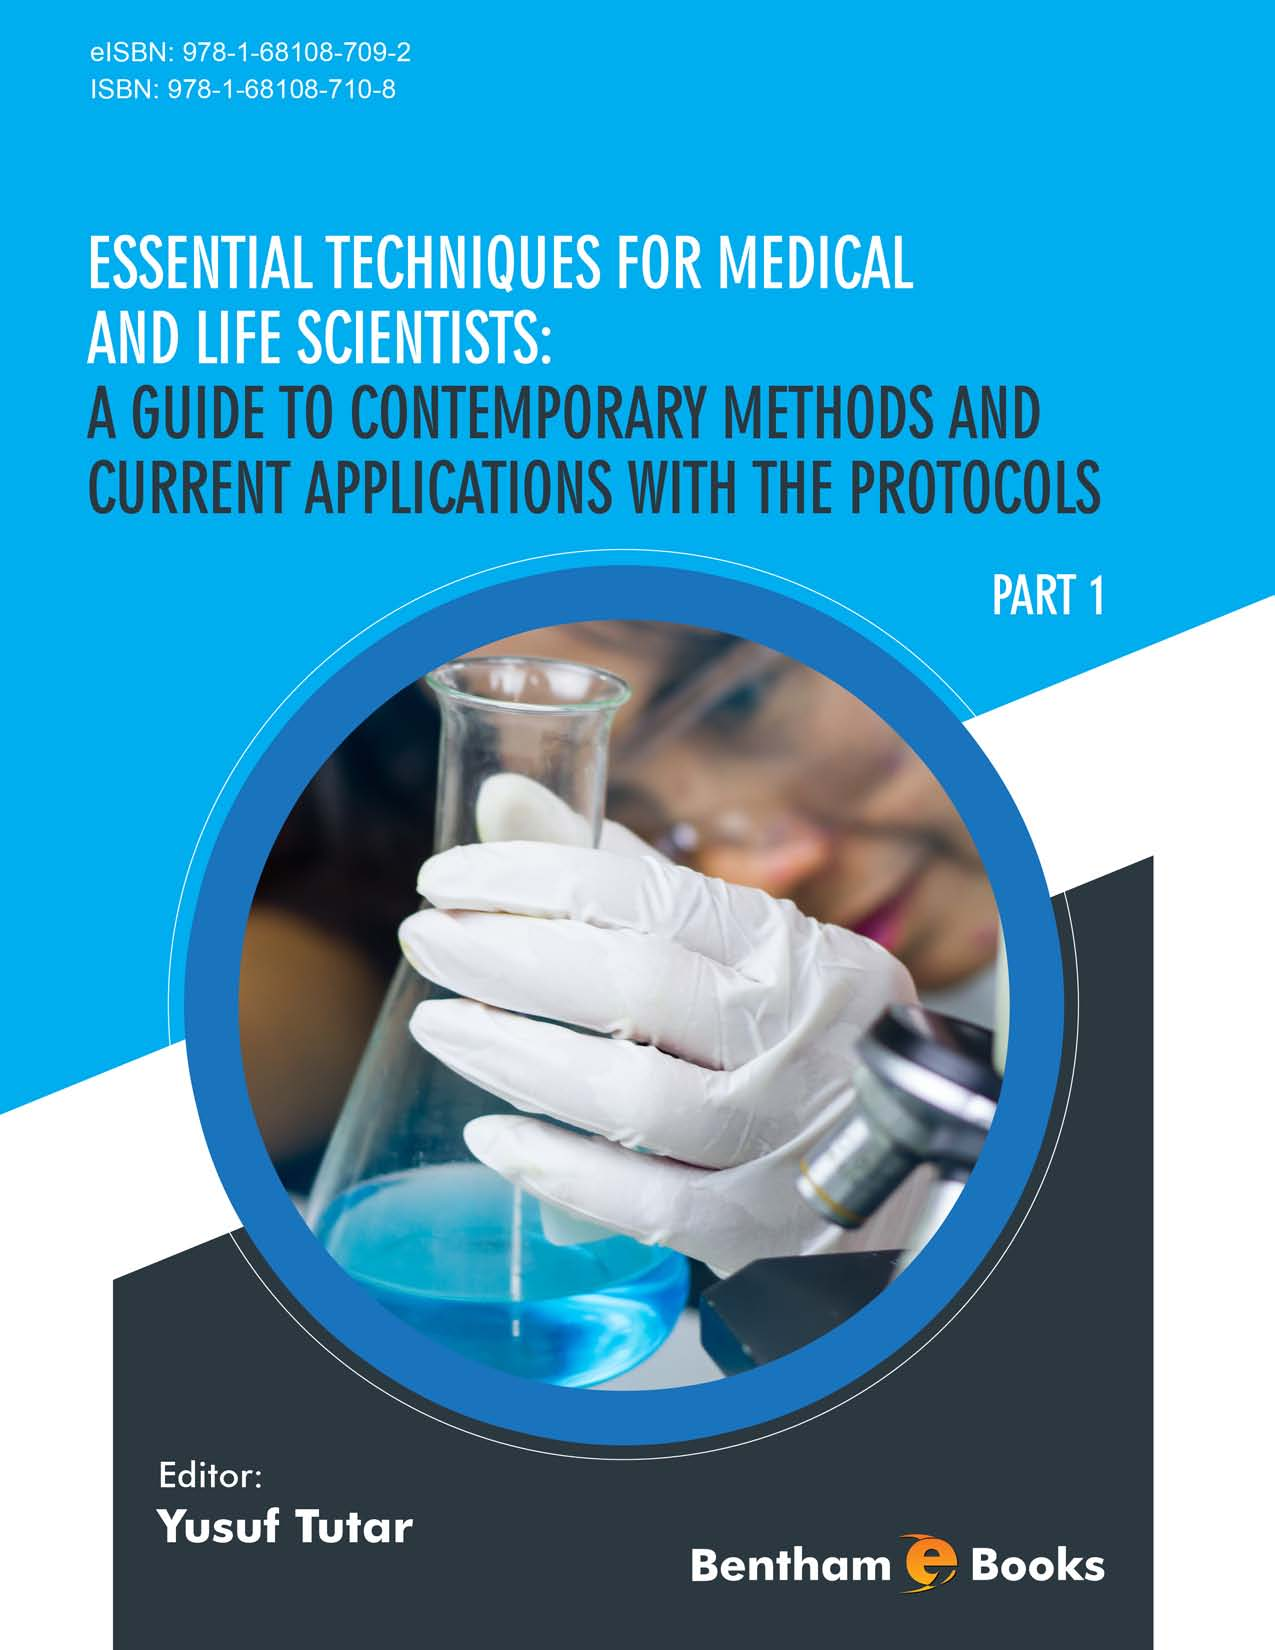 Essential Techniques for Medical and Life Scientists: A Guide to Contemporary Methods and Current Applications with the Protocols: Part 1